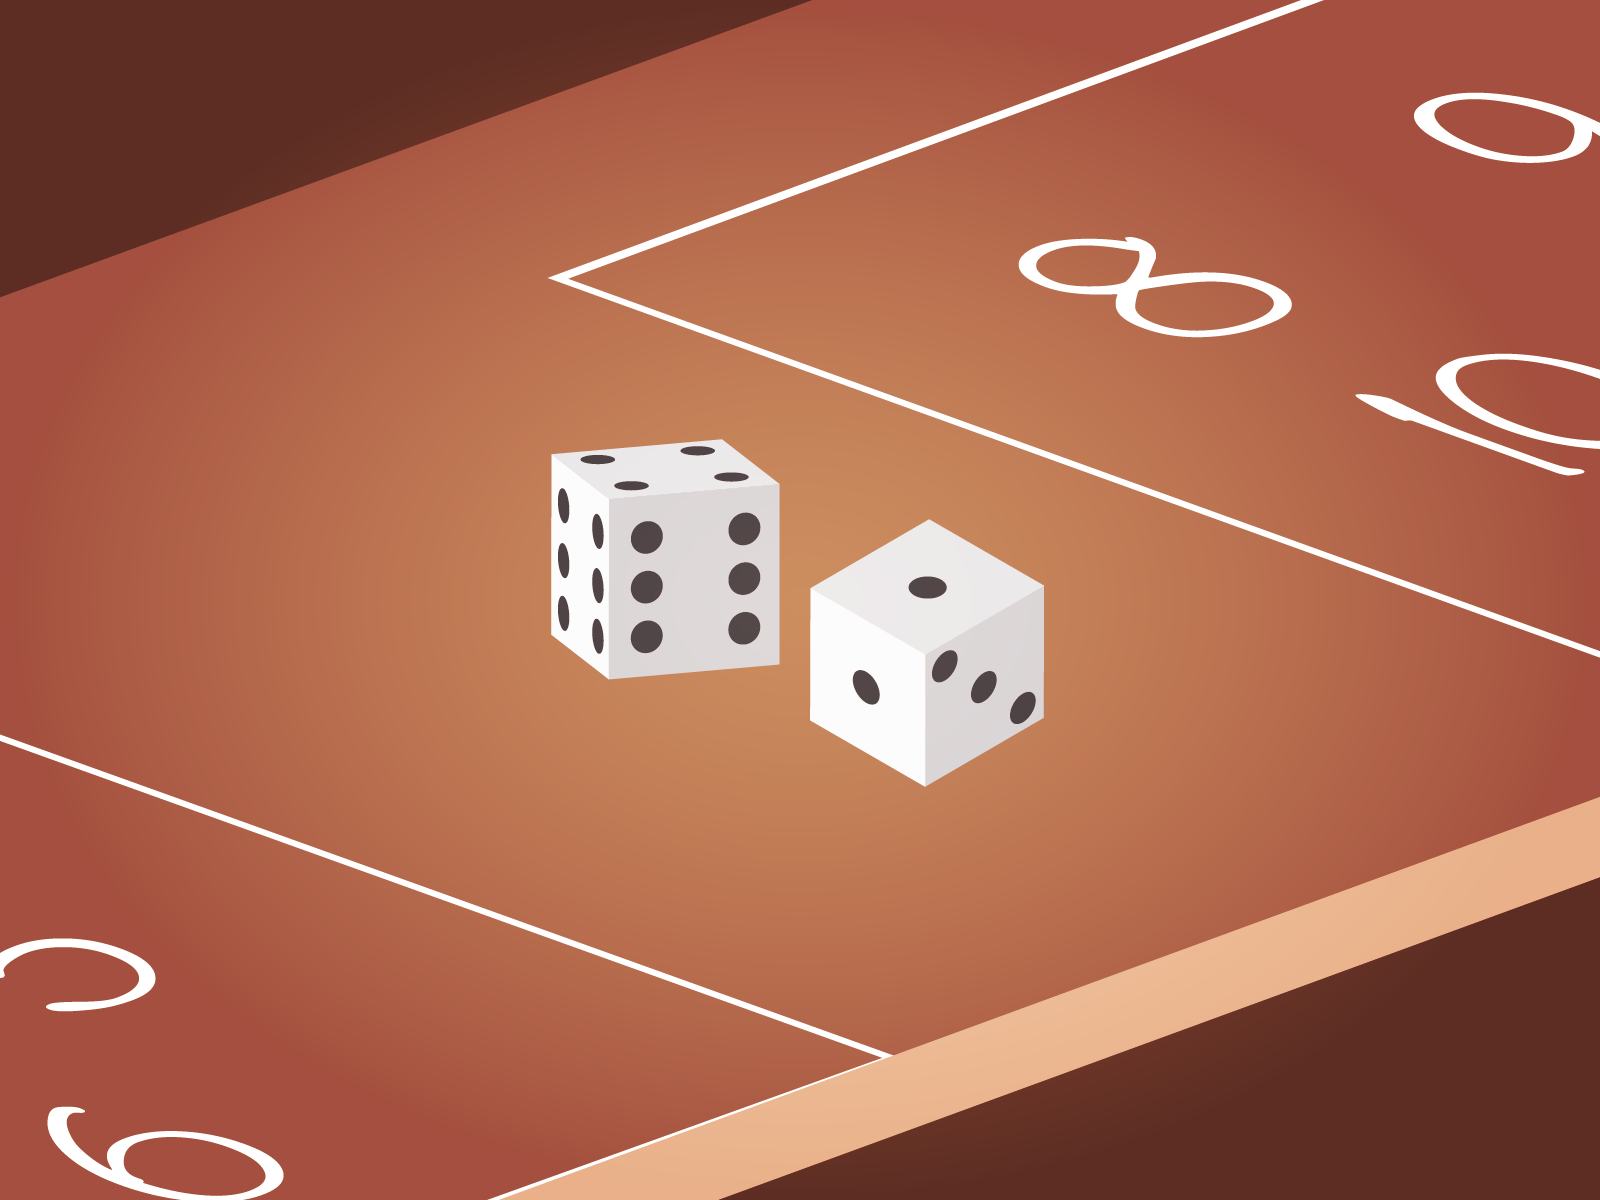 Cheat dice for Sevens out game